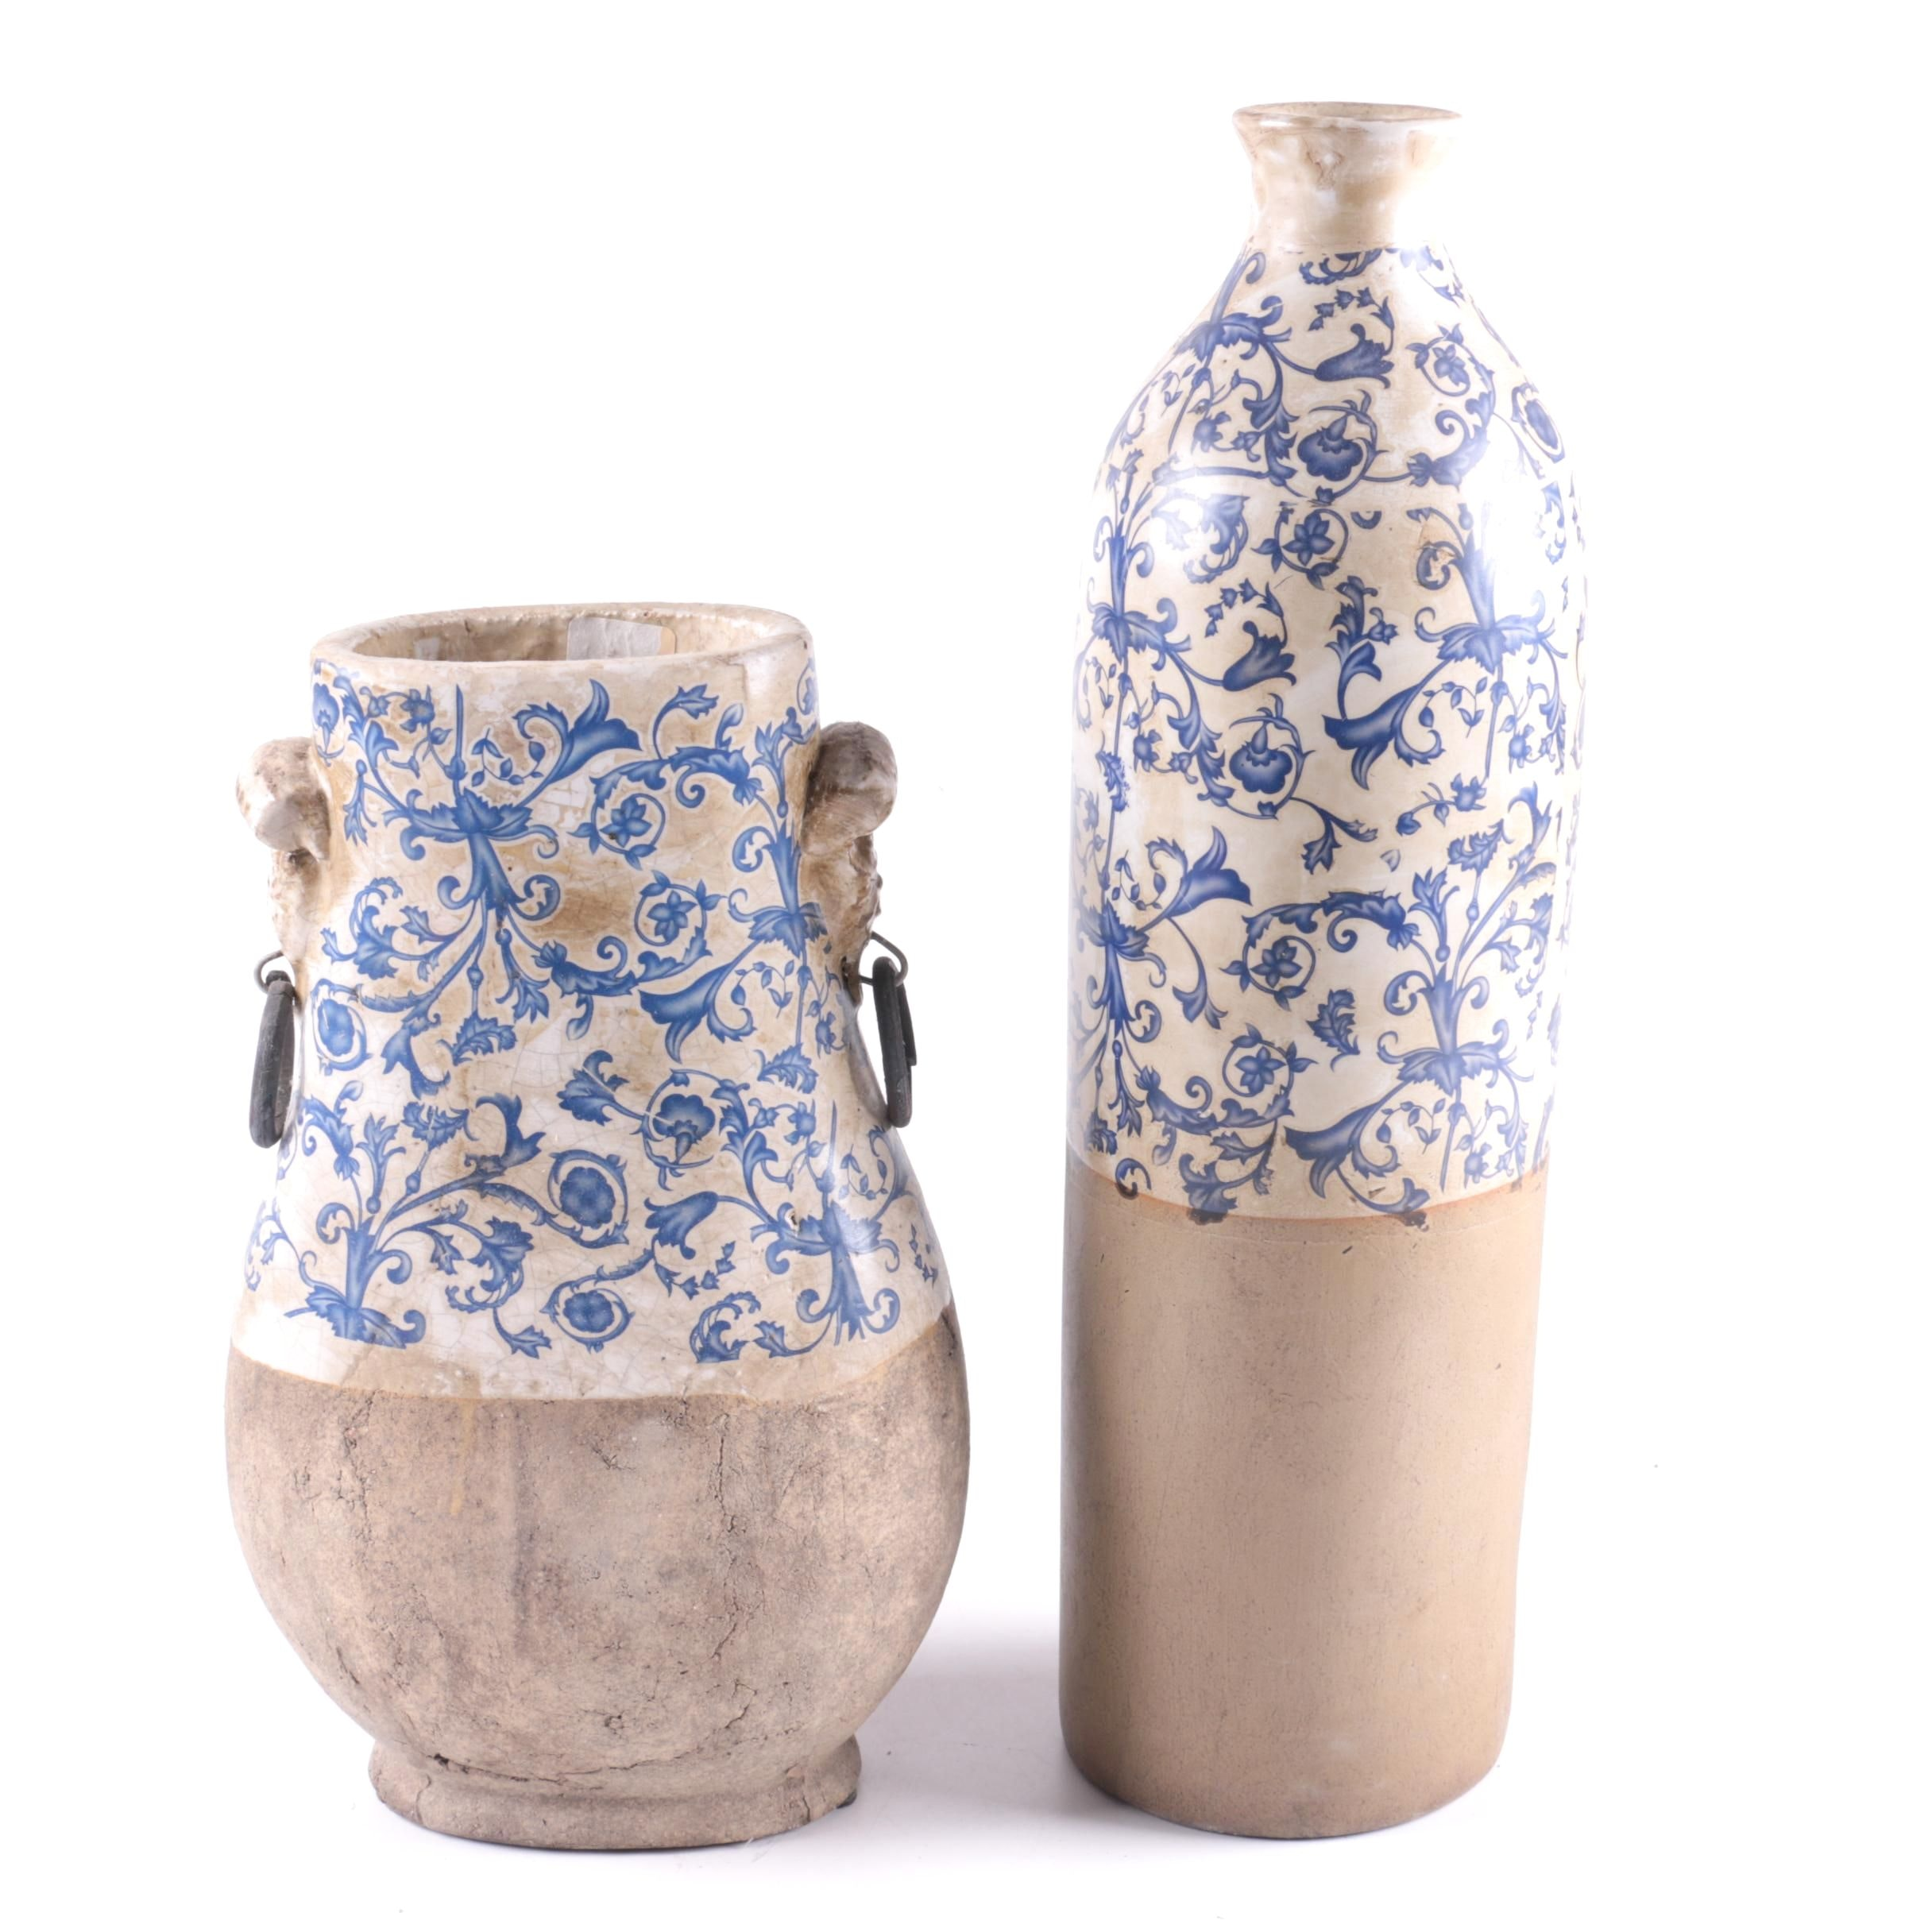 Blue and White Transfer Printed Stoneware Vases